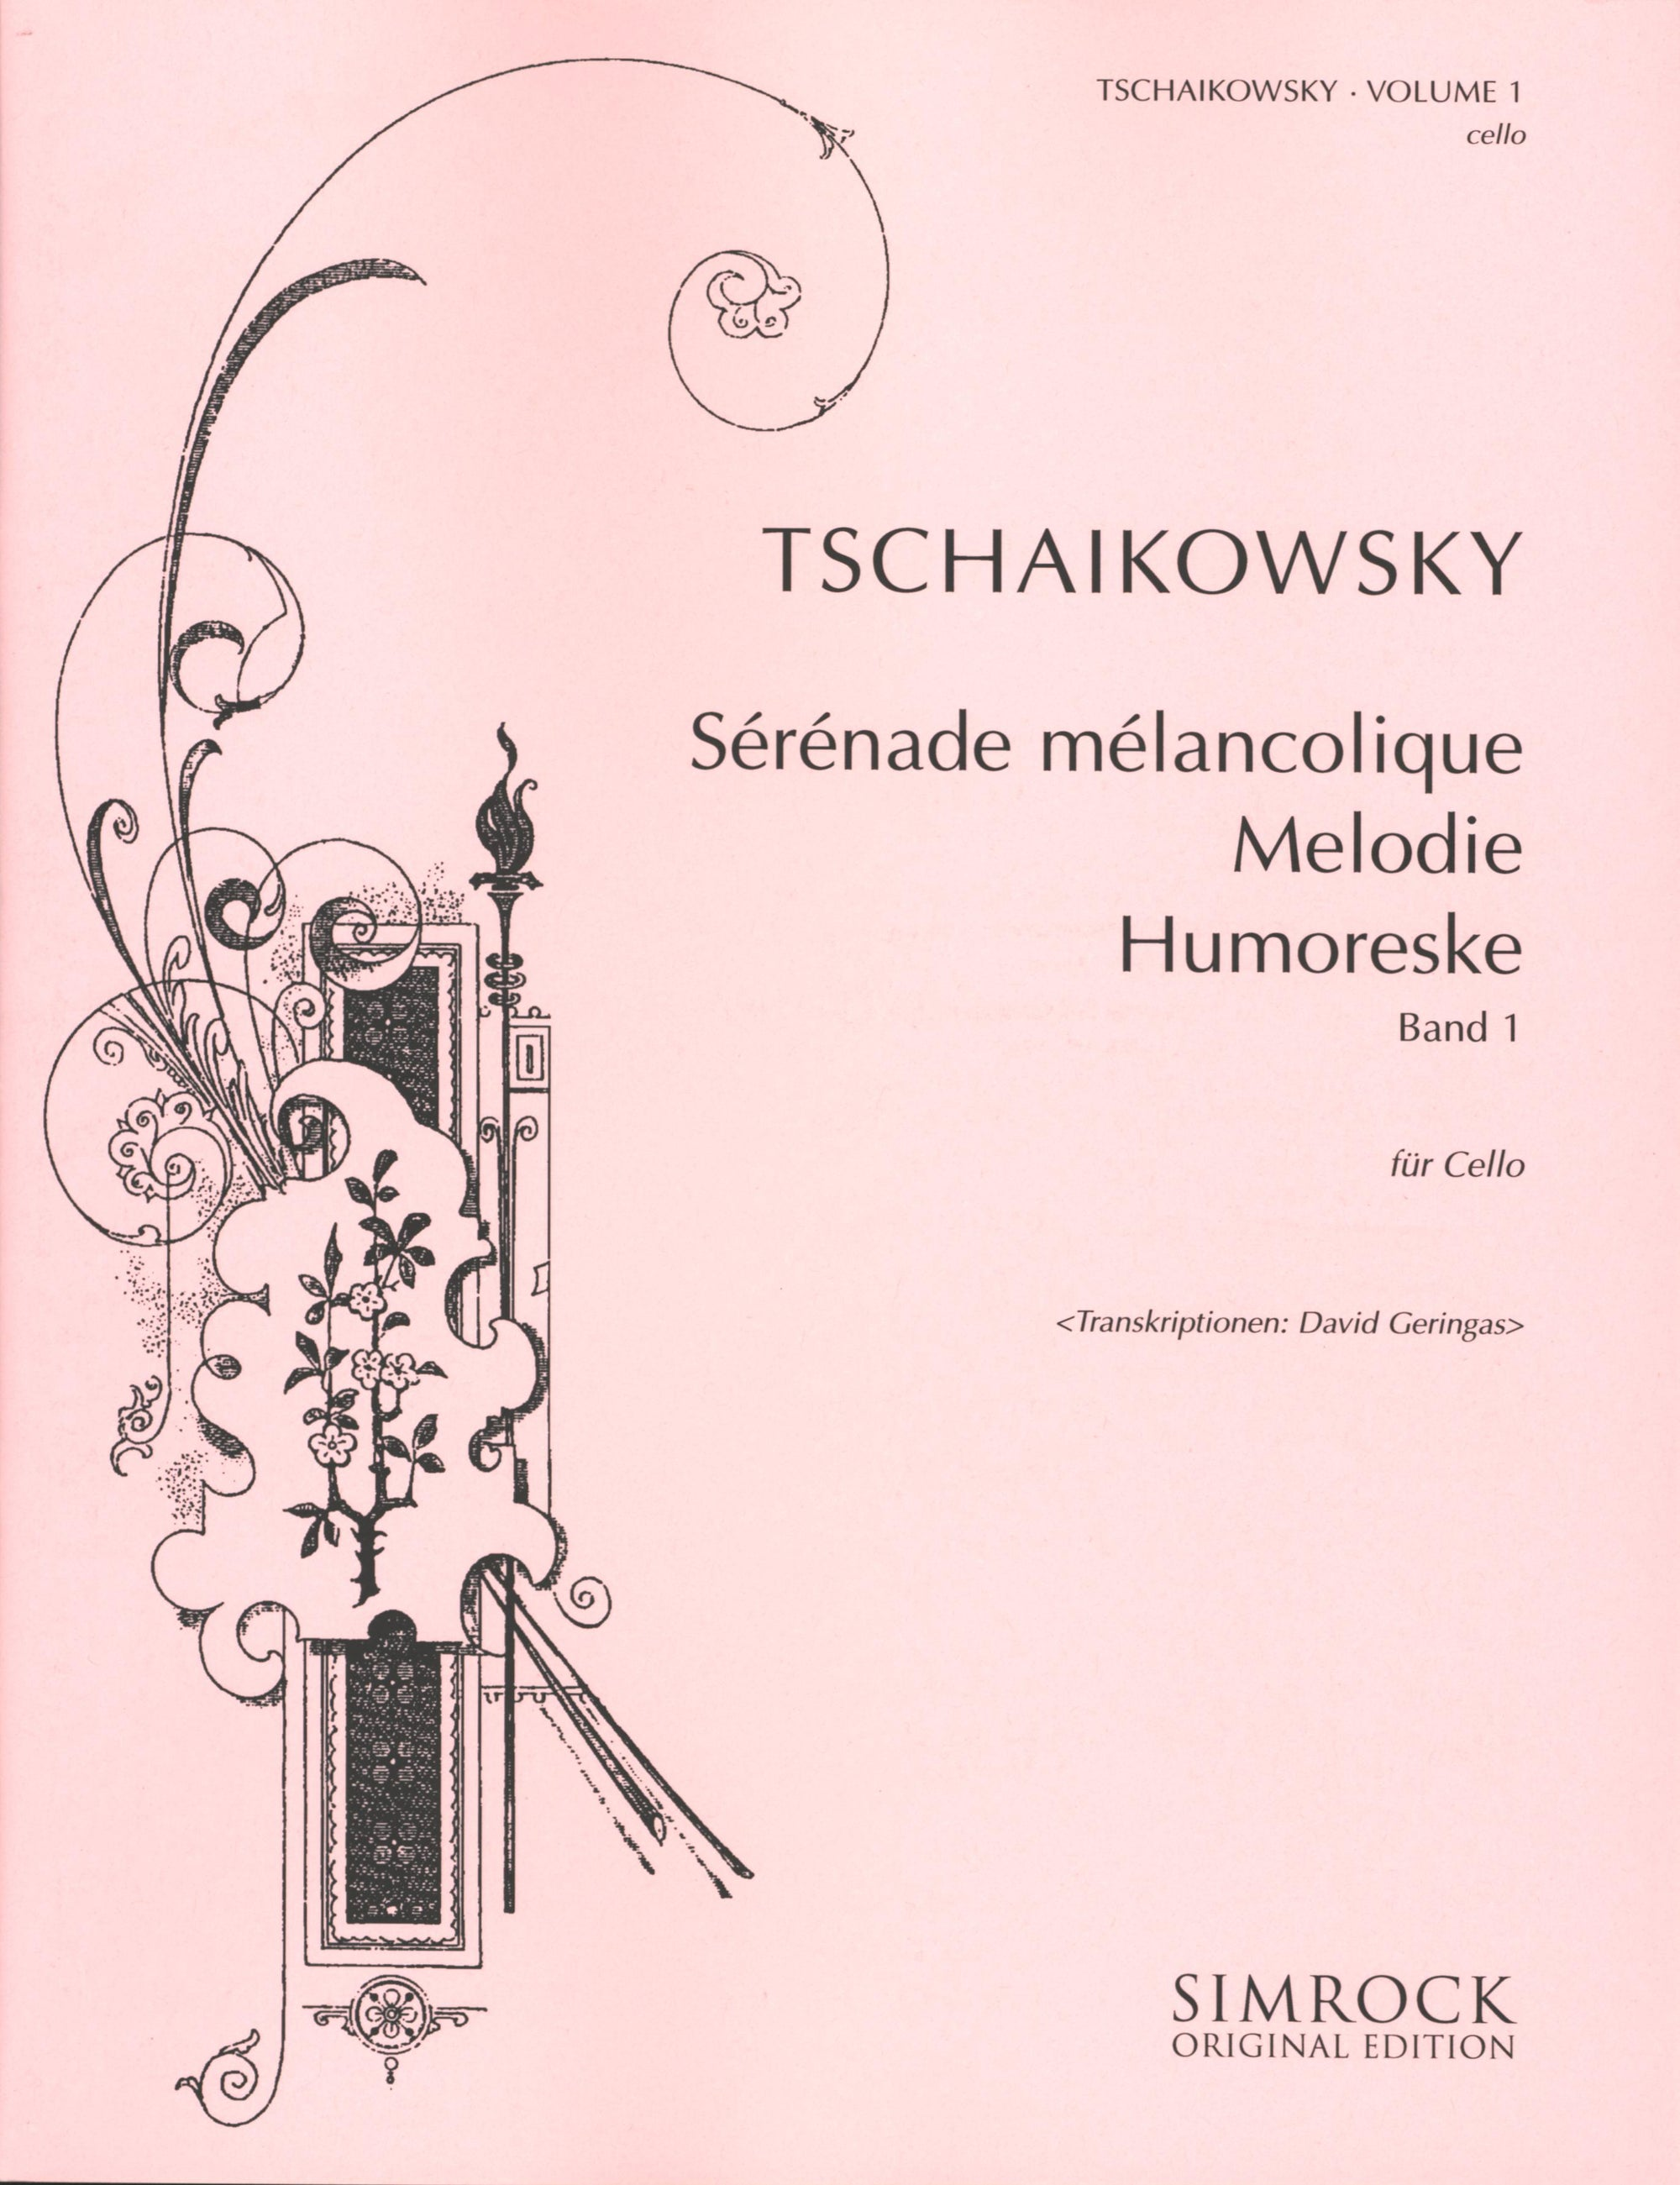 Tchaikovsky for Cello - Volume 1